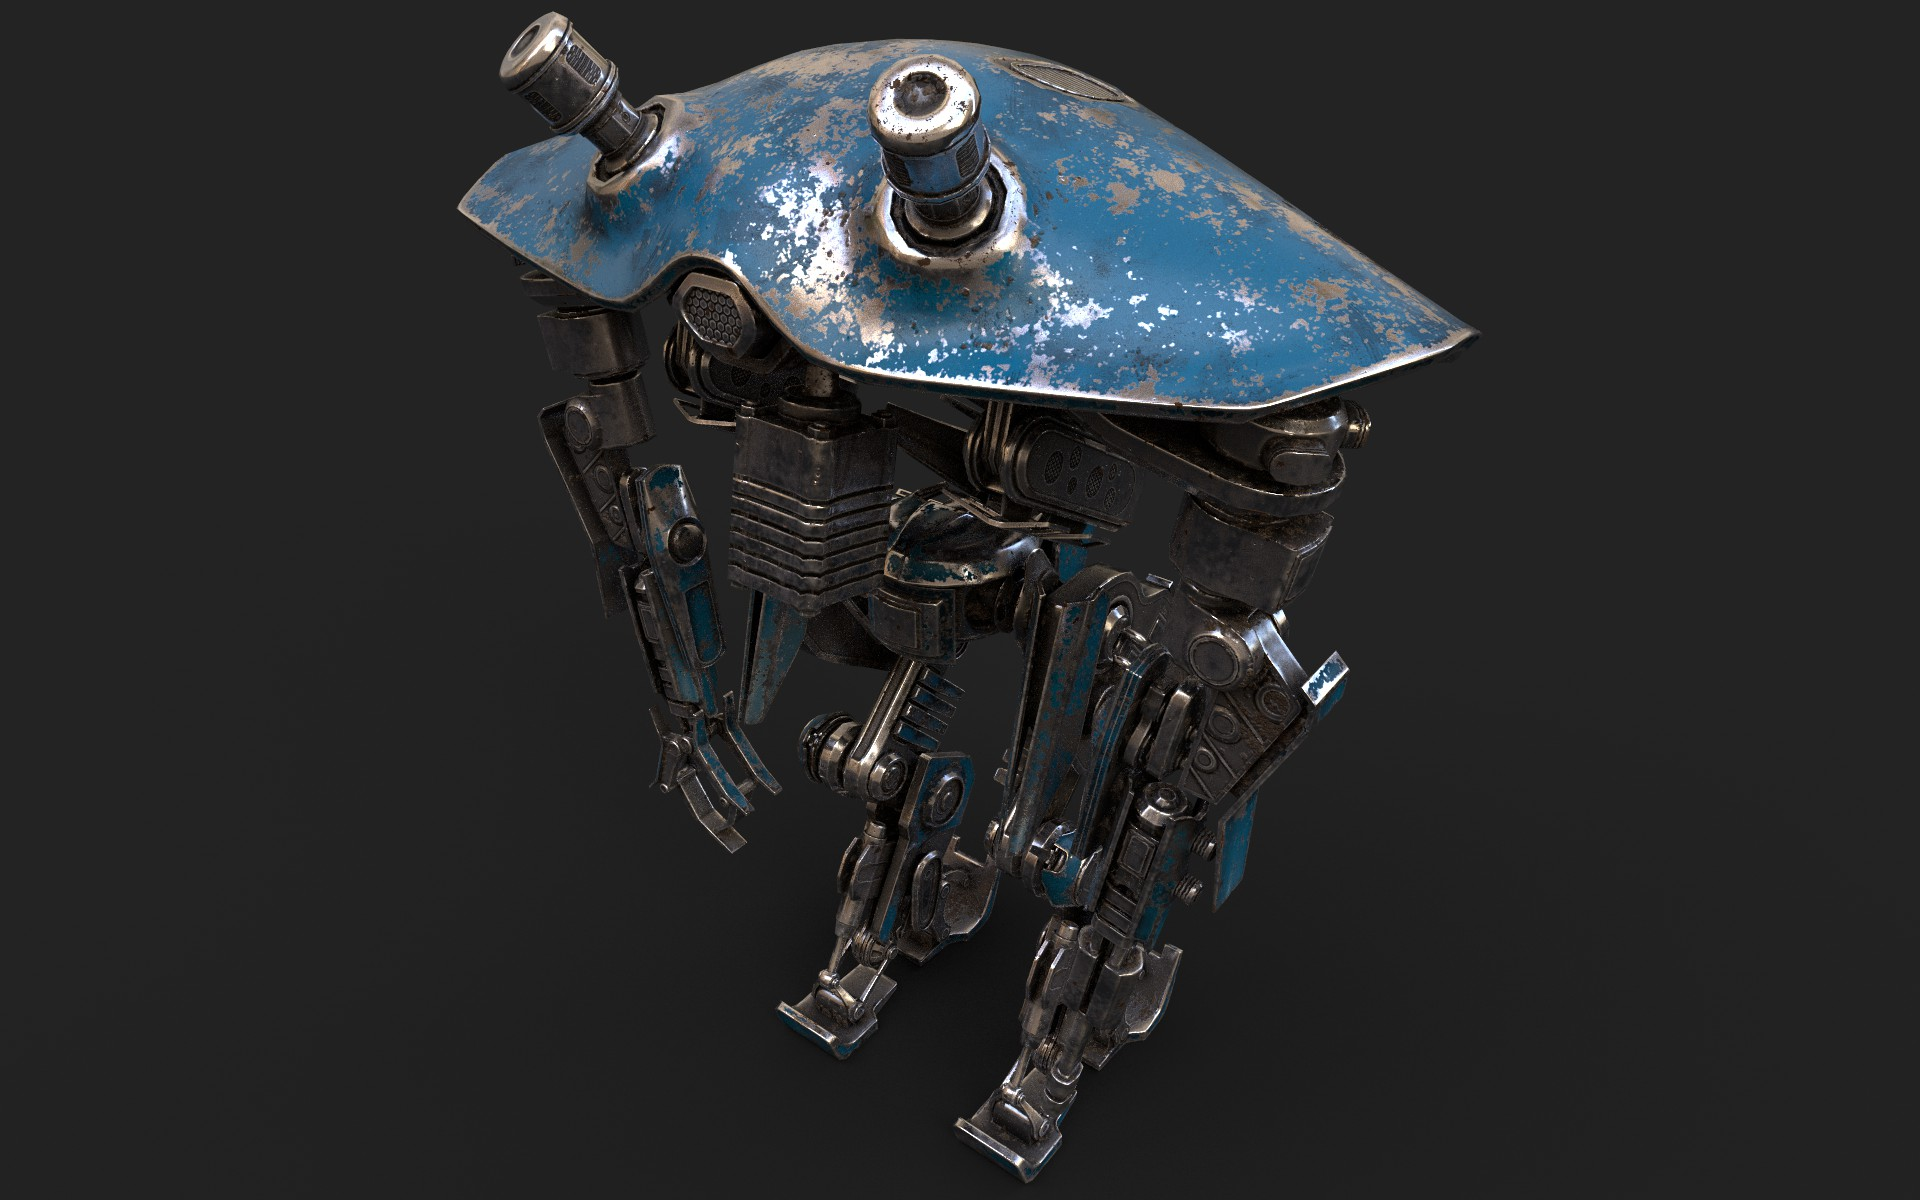 heavy robot vex700 3d model 3ds max fbx obj 279578